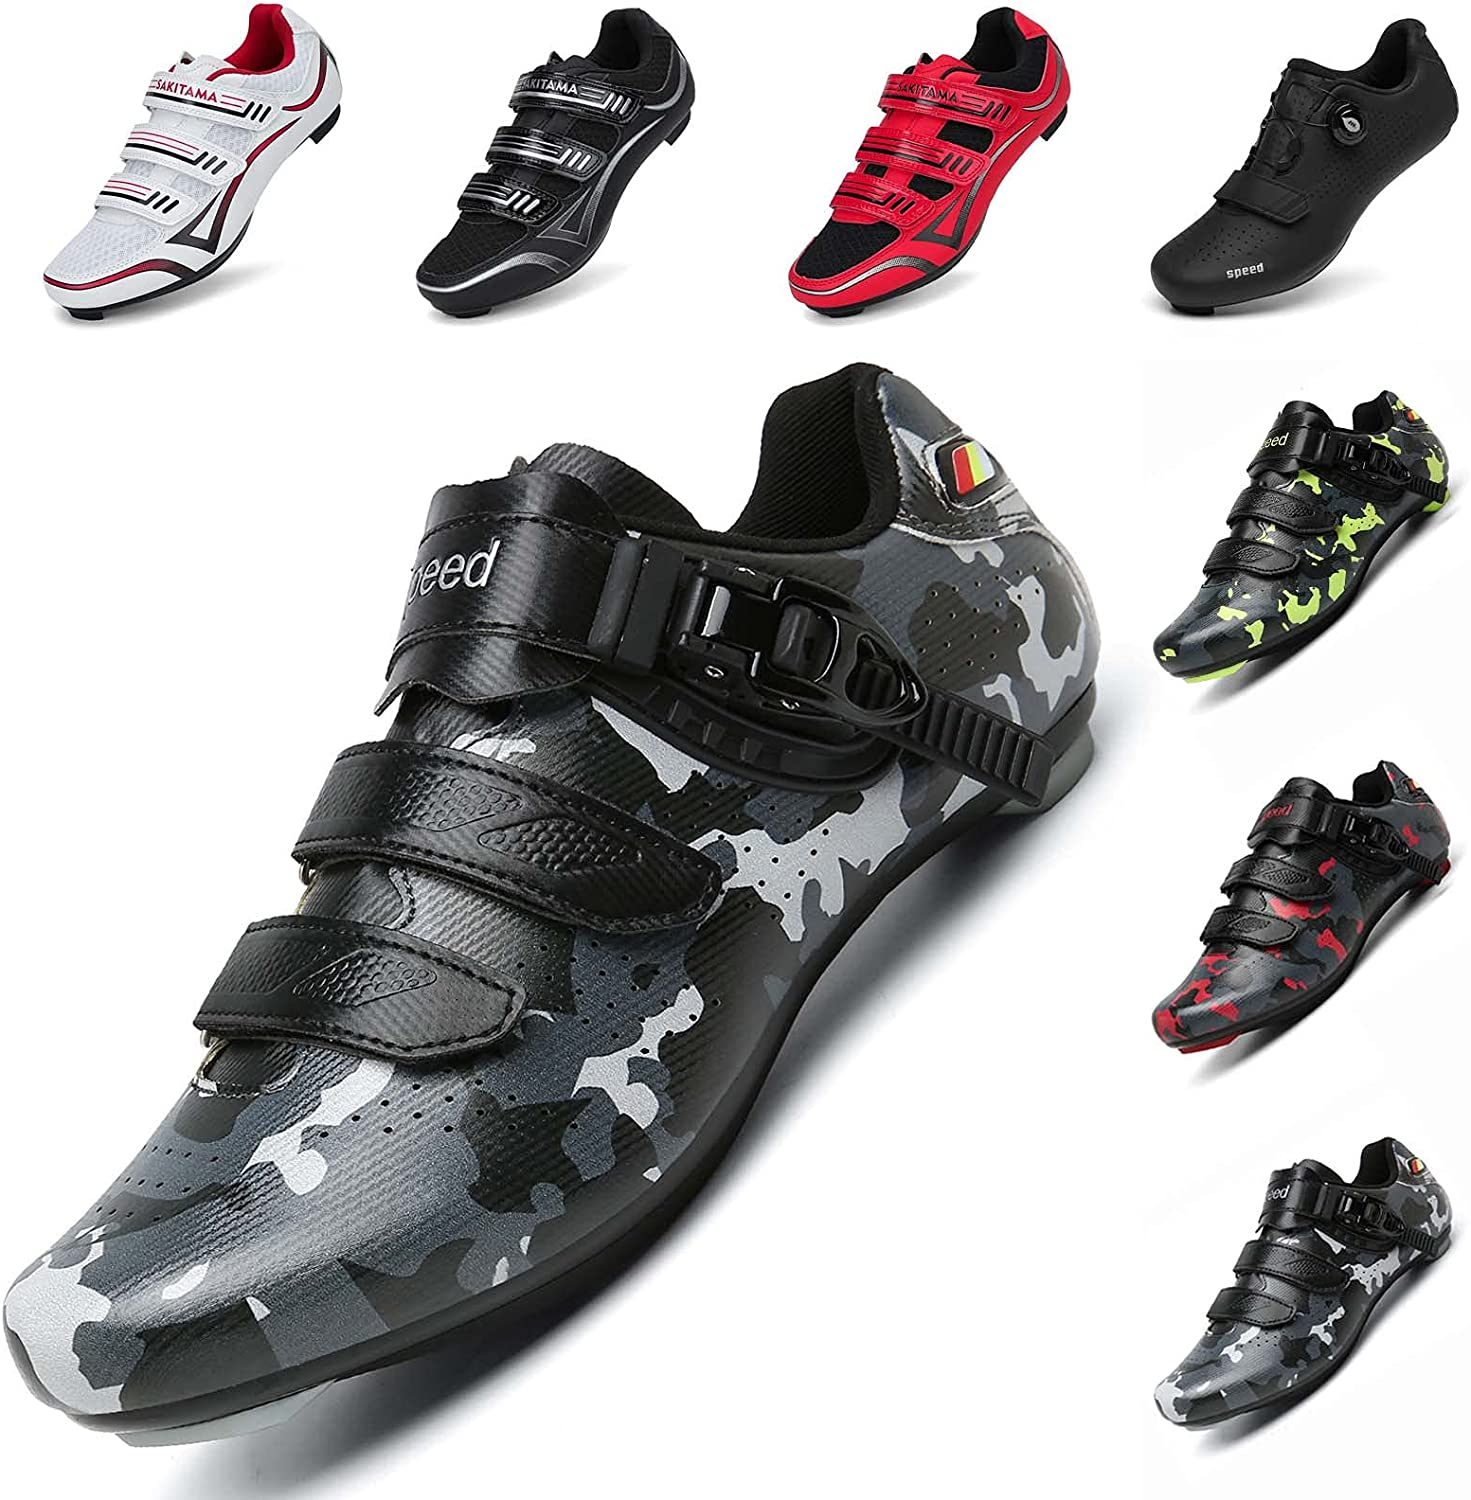 SAK1TAMA Unisex Inventory cleanup selling sale Bicycle Men's Women's - At the price Cycling Shoes Riding Spi